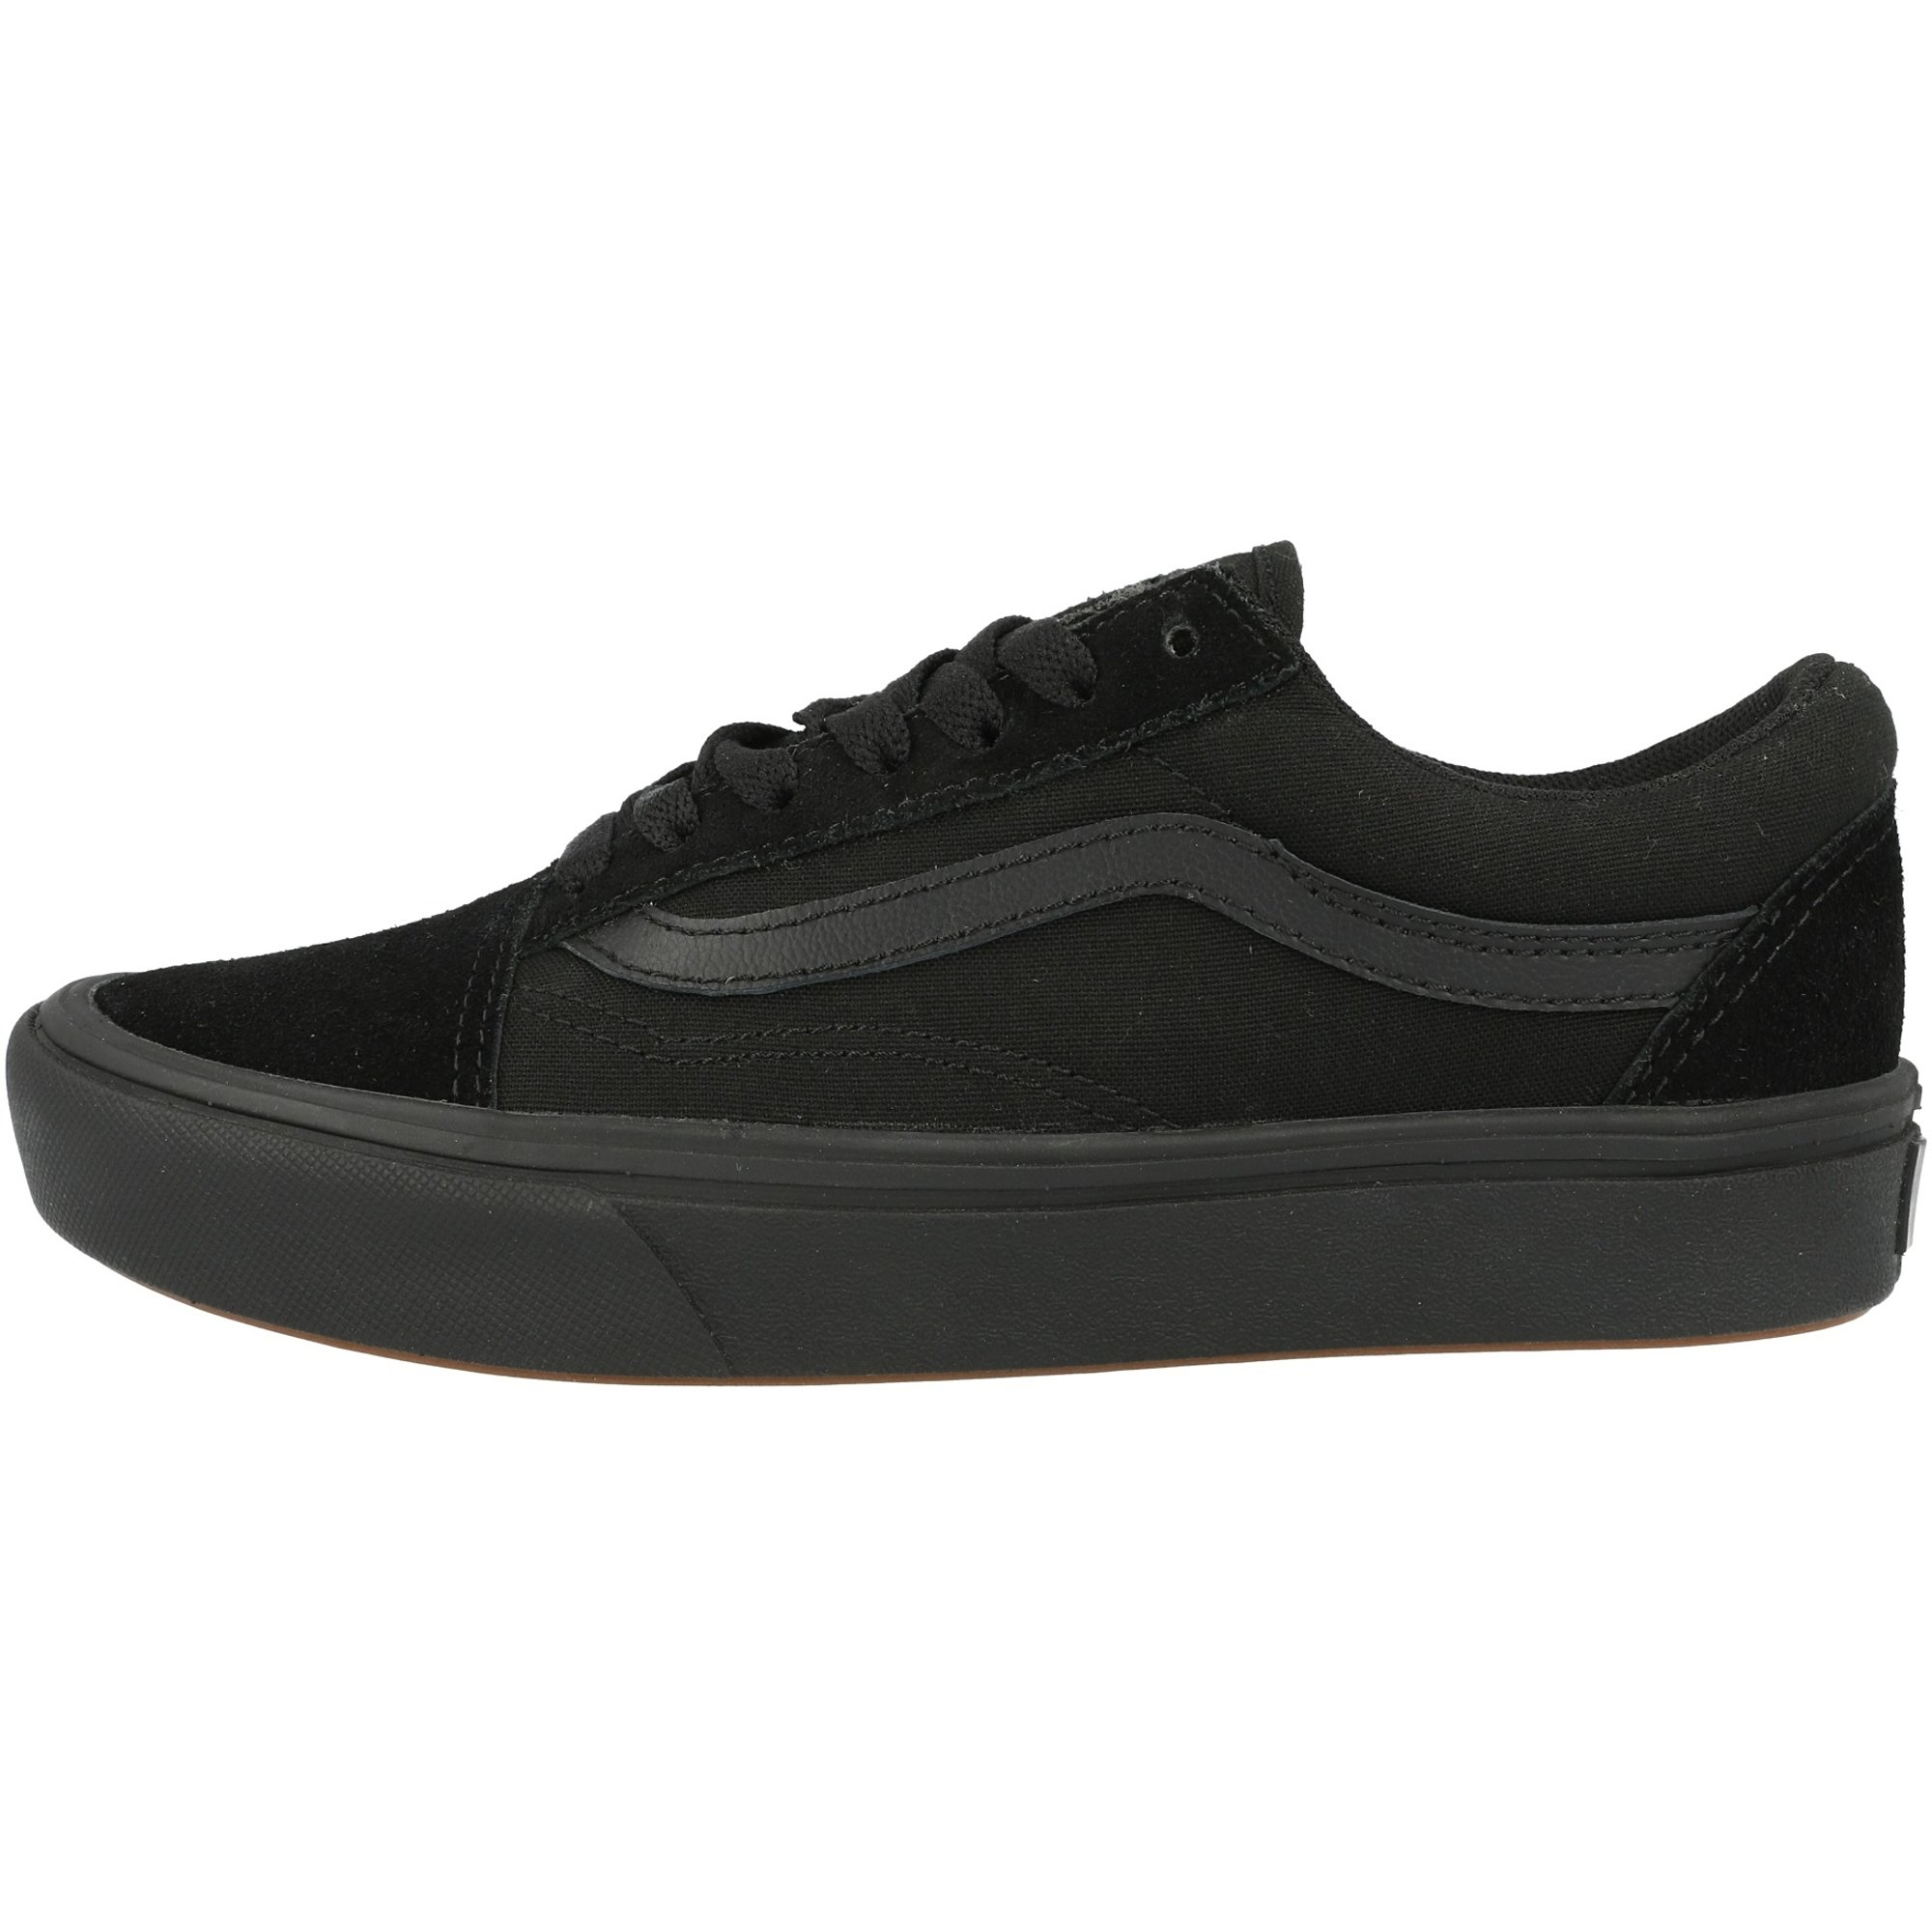 Vans UA ComfyCush Old Skool Black Suede Adult